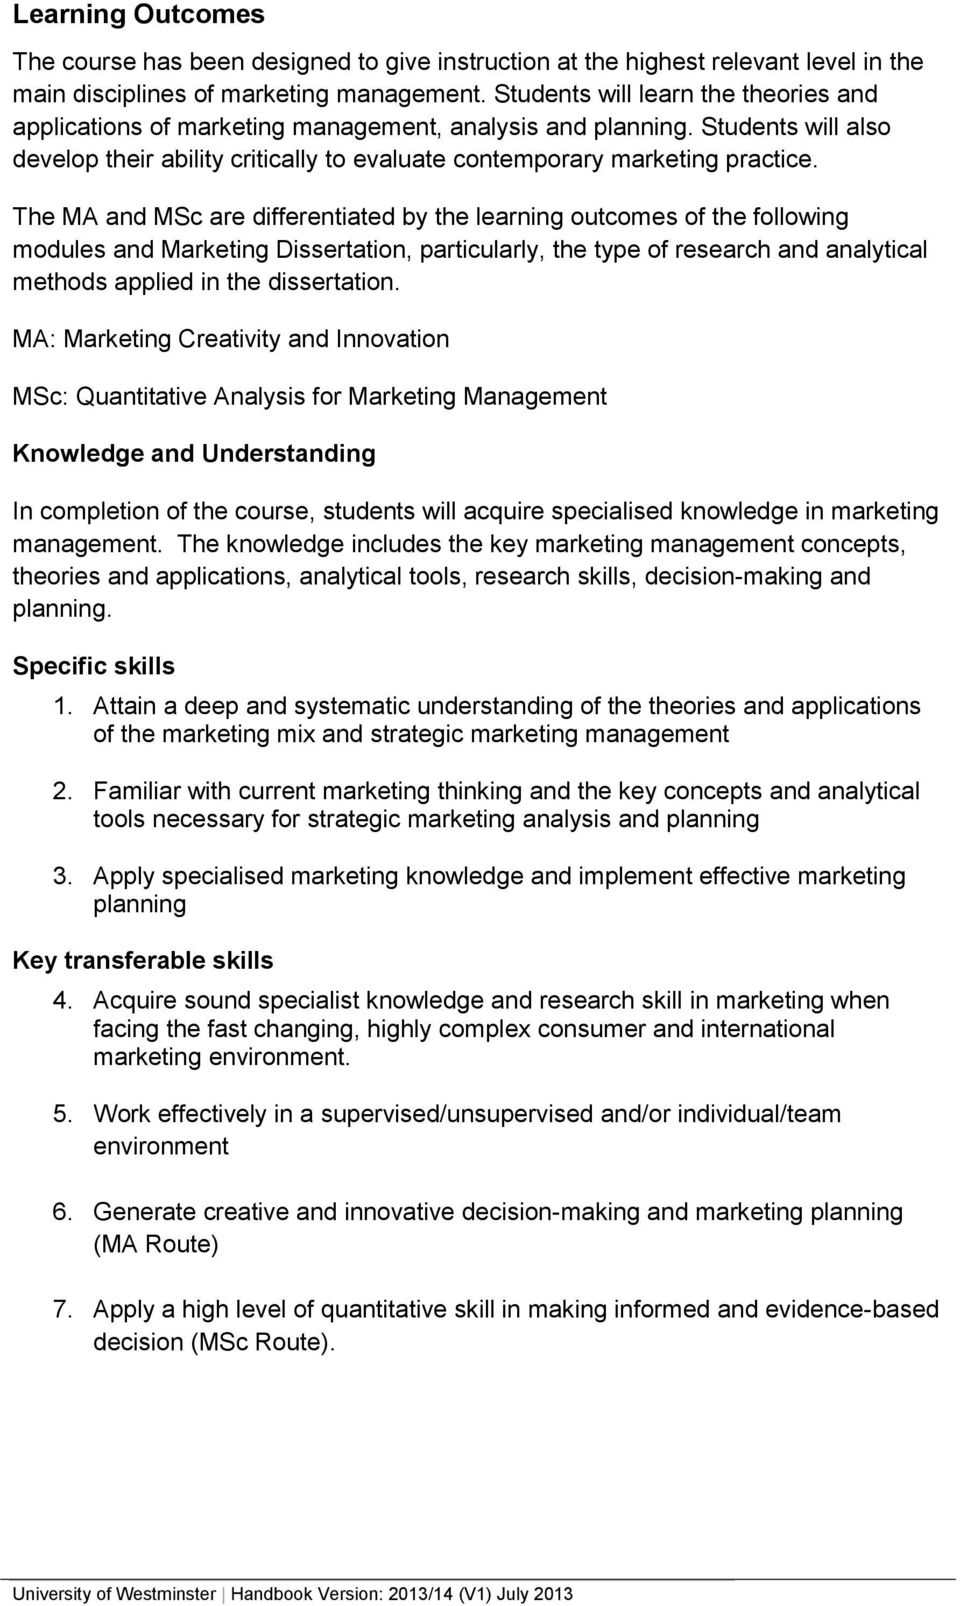 The MA and MSc are differentiated by the learning outcomes of the following modules and Marketing Dissertation, particularly, the type of research and analytical methods applied in the dissertation.